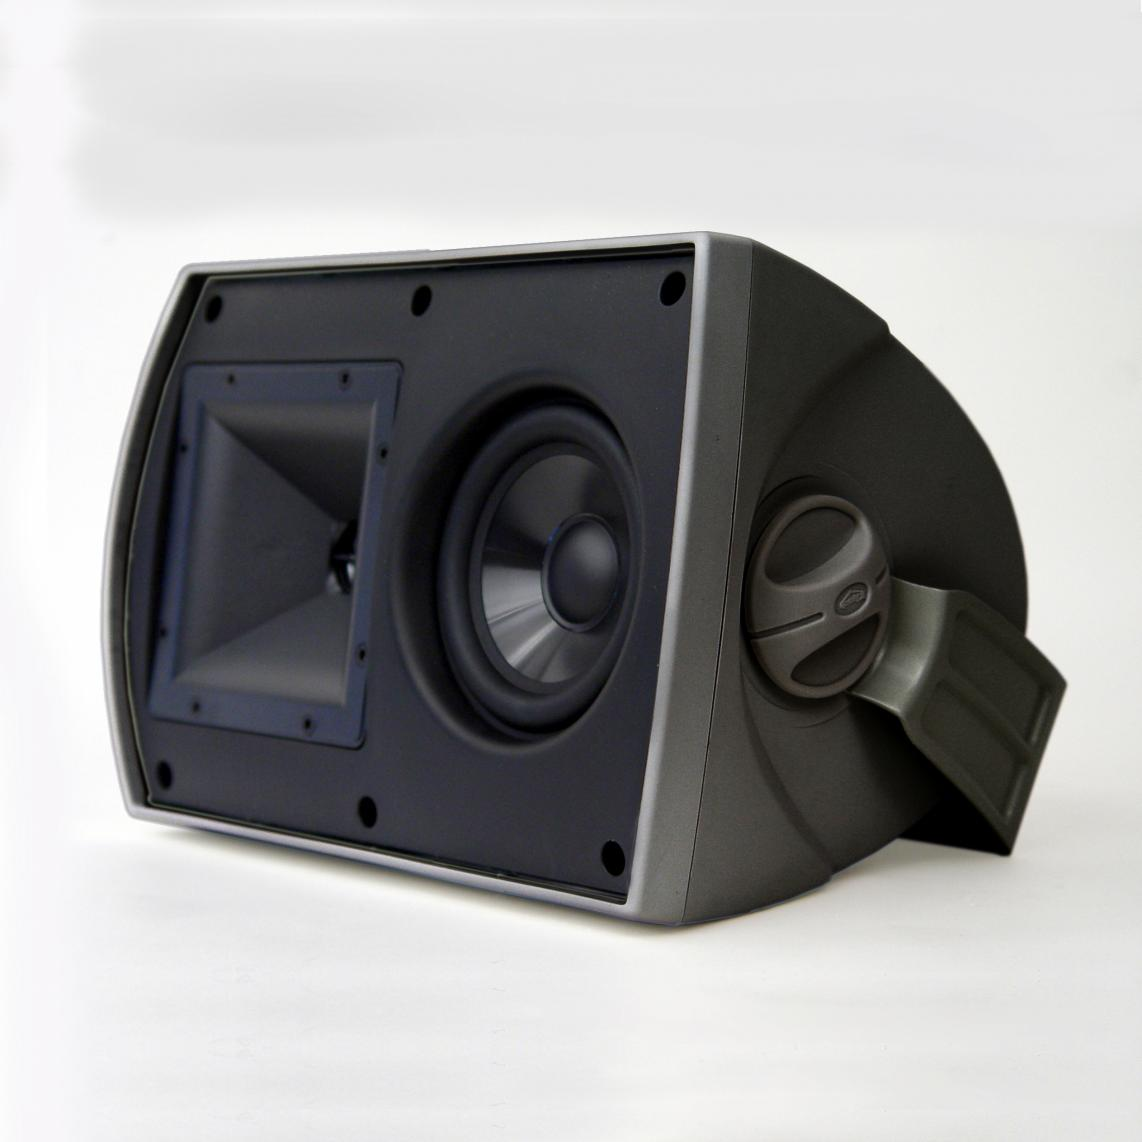 Klipsch AW-525 Outdoor Speaker(black)(pair) - Click Image to Close